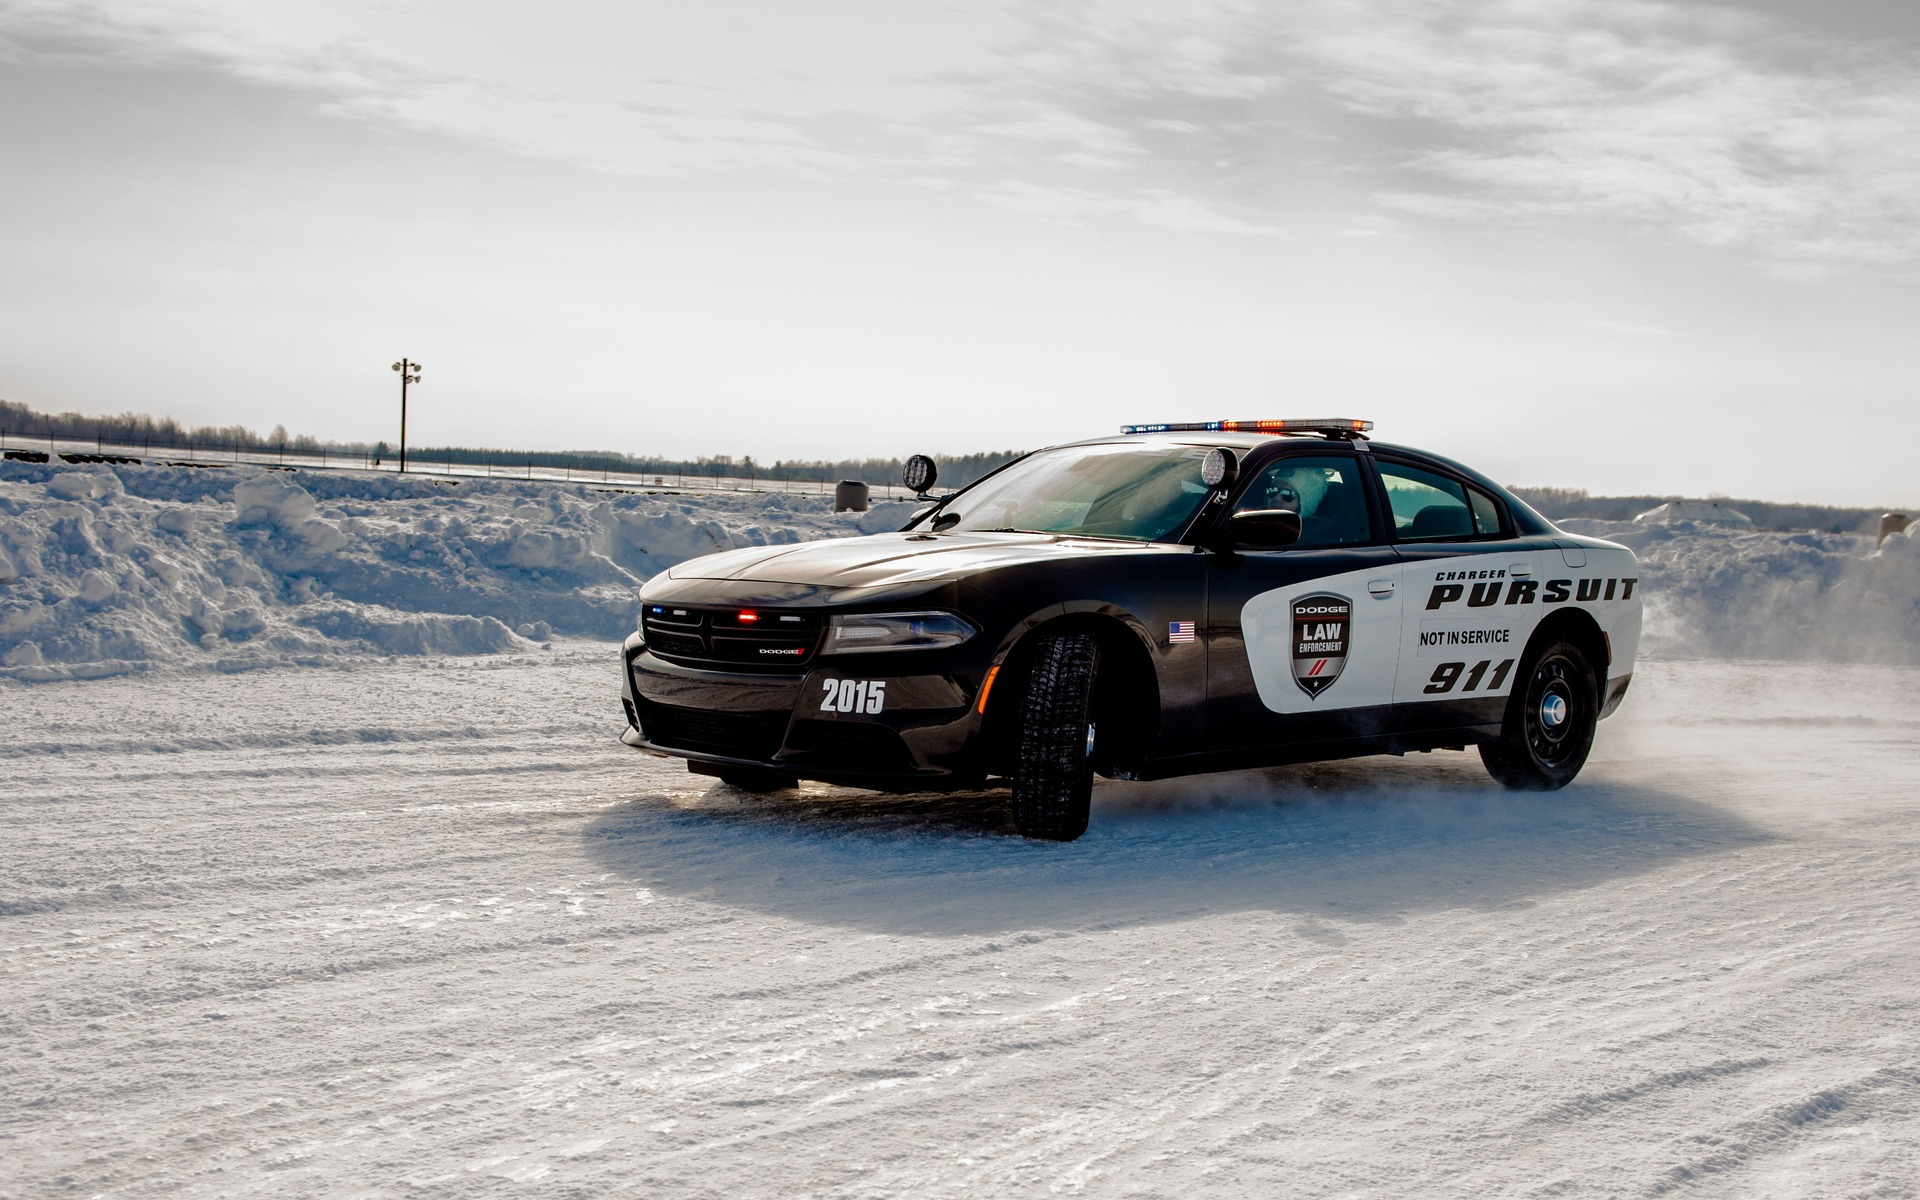 Sideways In The Snow At Chrysler's Winter Driving Program